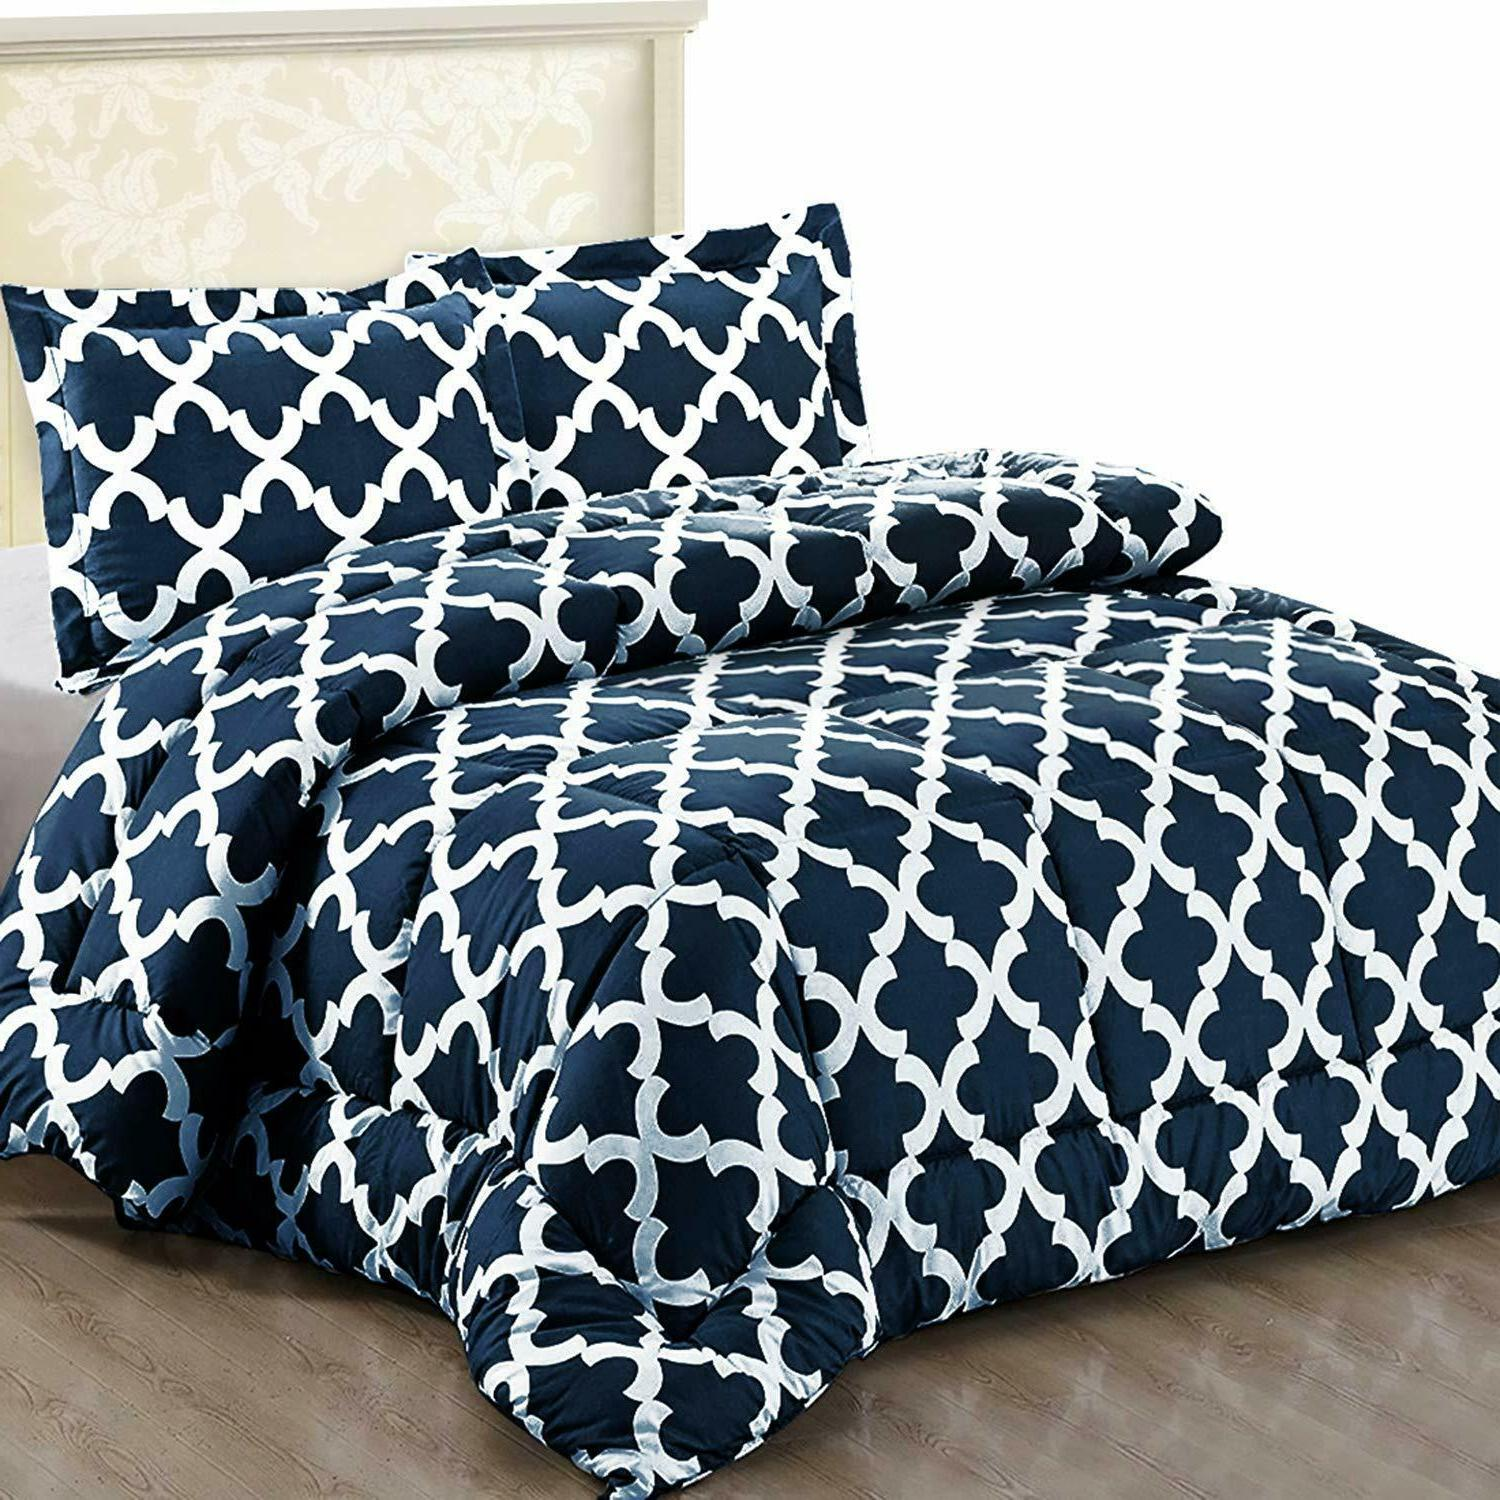 Printed Comforter Set 2 Microfiber by Bedding